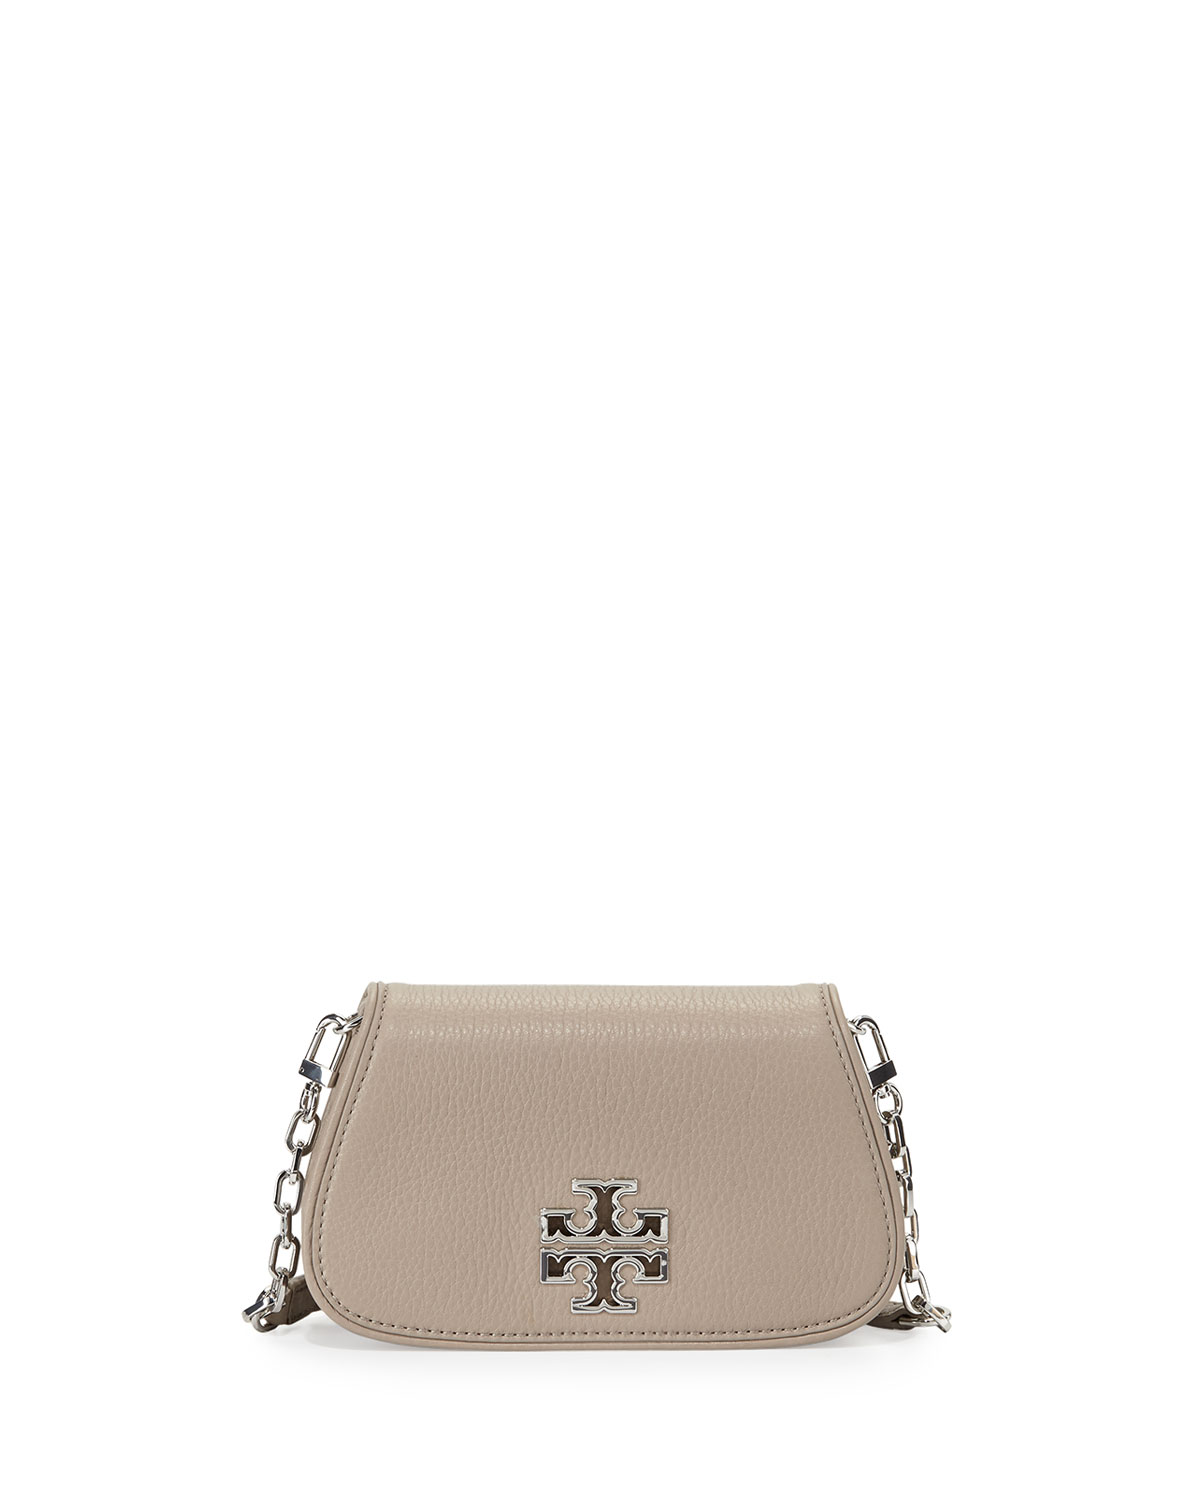 ec3e5c2f8a2c Tory Burch Britten Mini Crossbody Bag